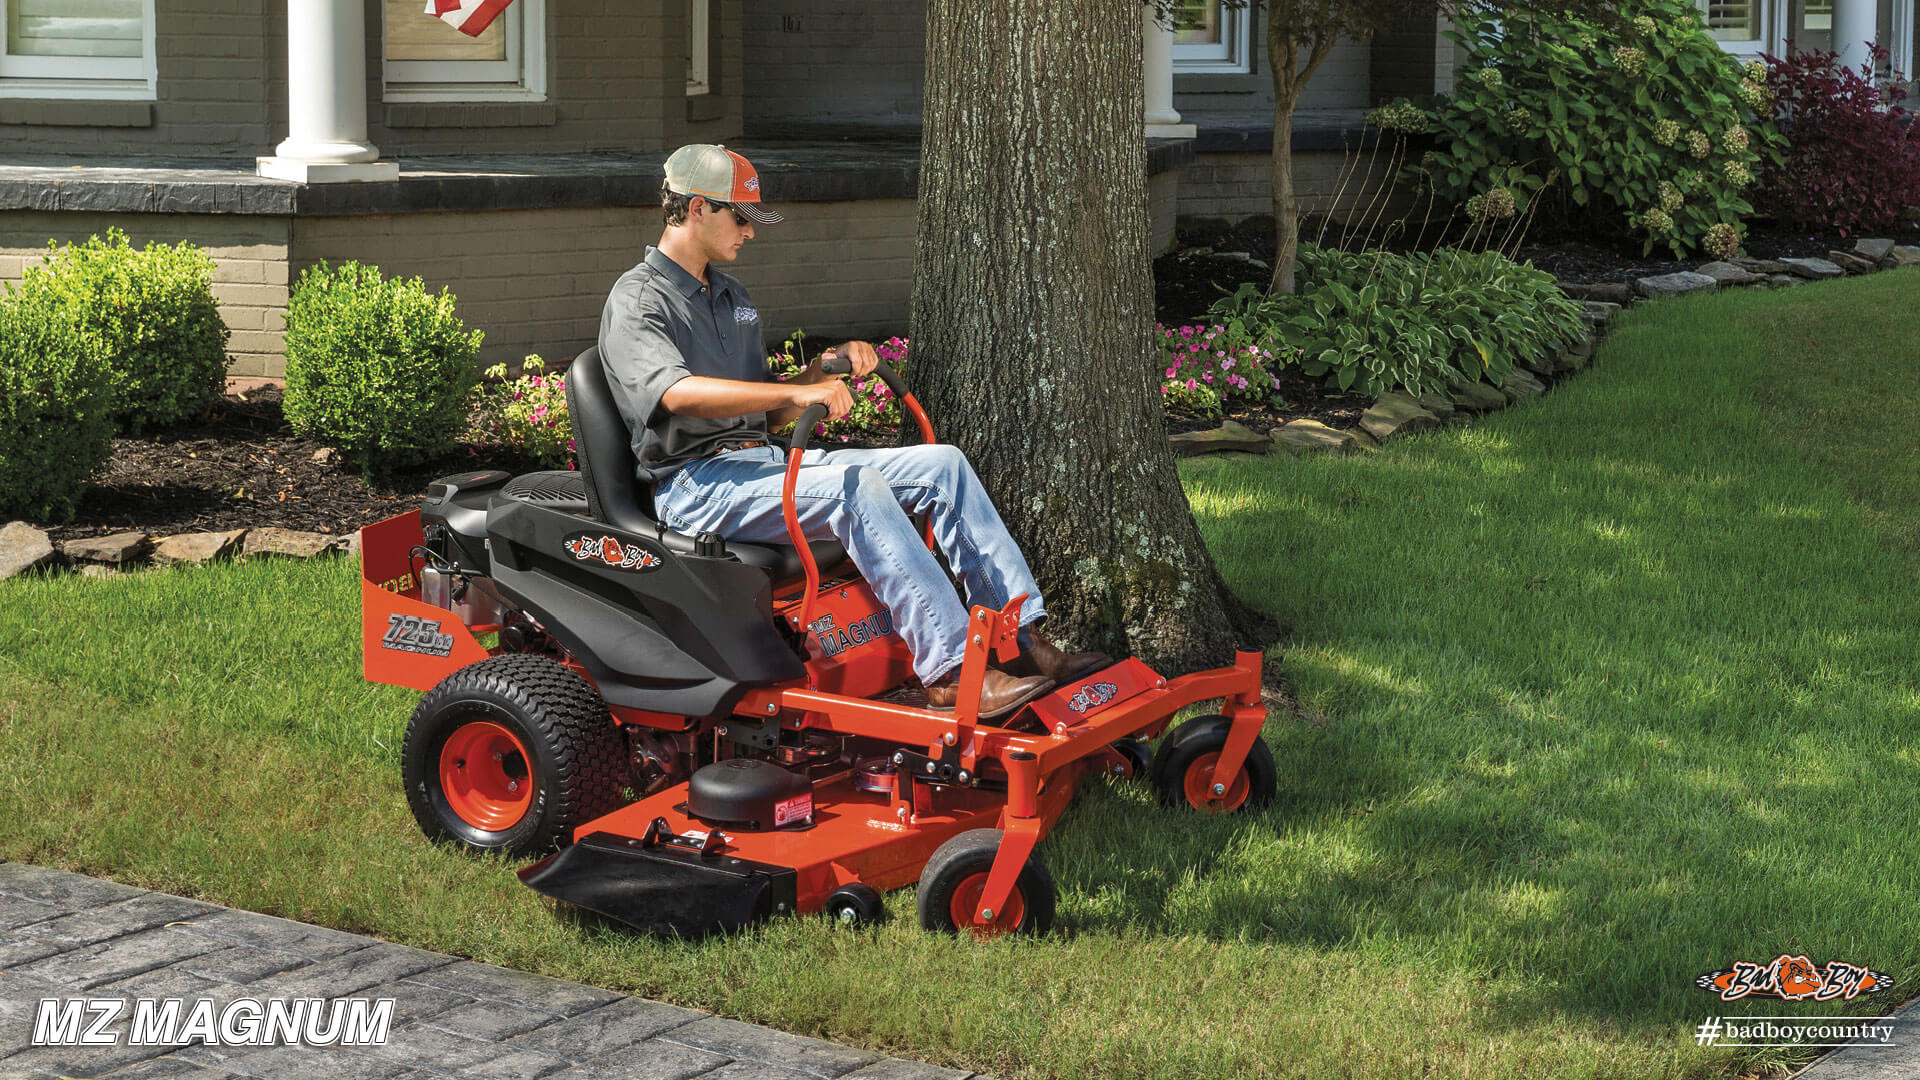 2017 Bad Boy Mowers 5400 (Kohler) MZ Magnum in Mechanicsburg, Pennsylvania